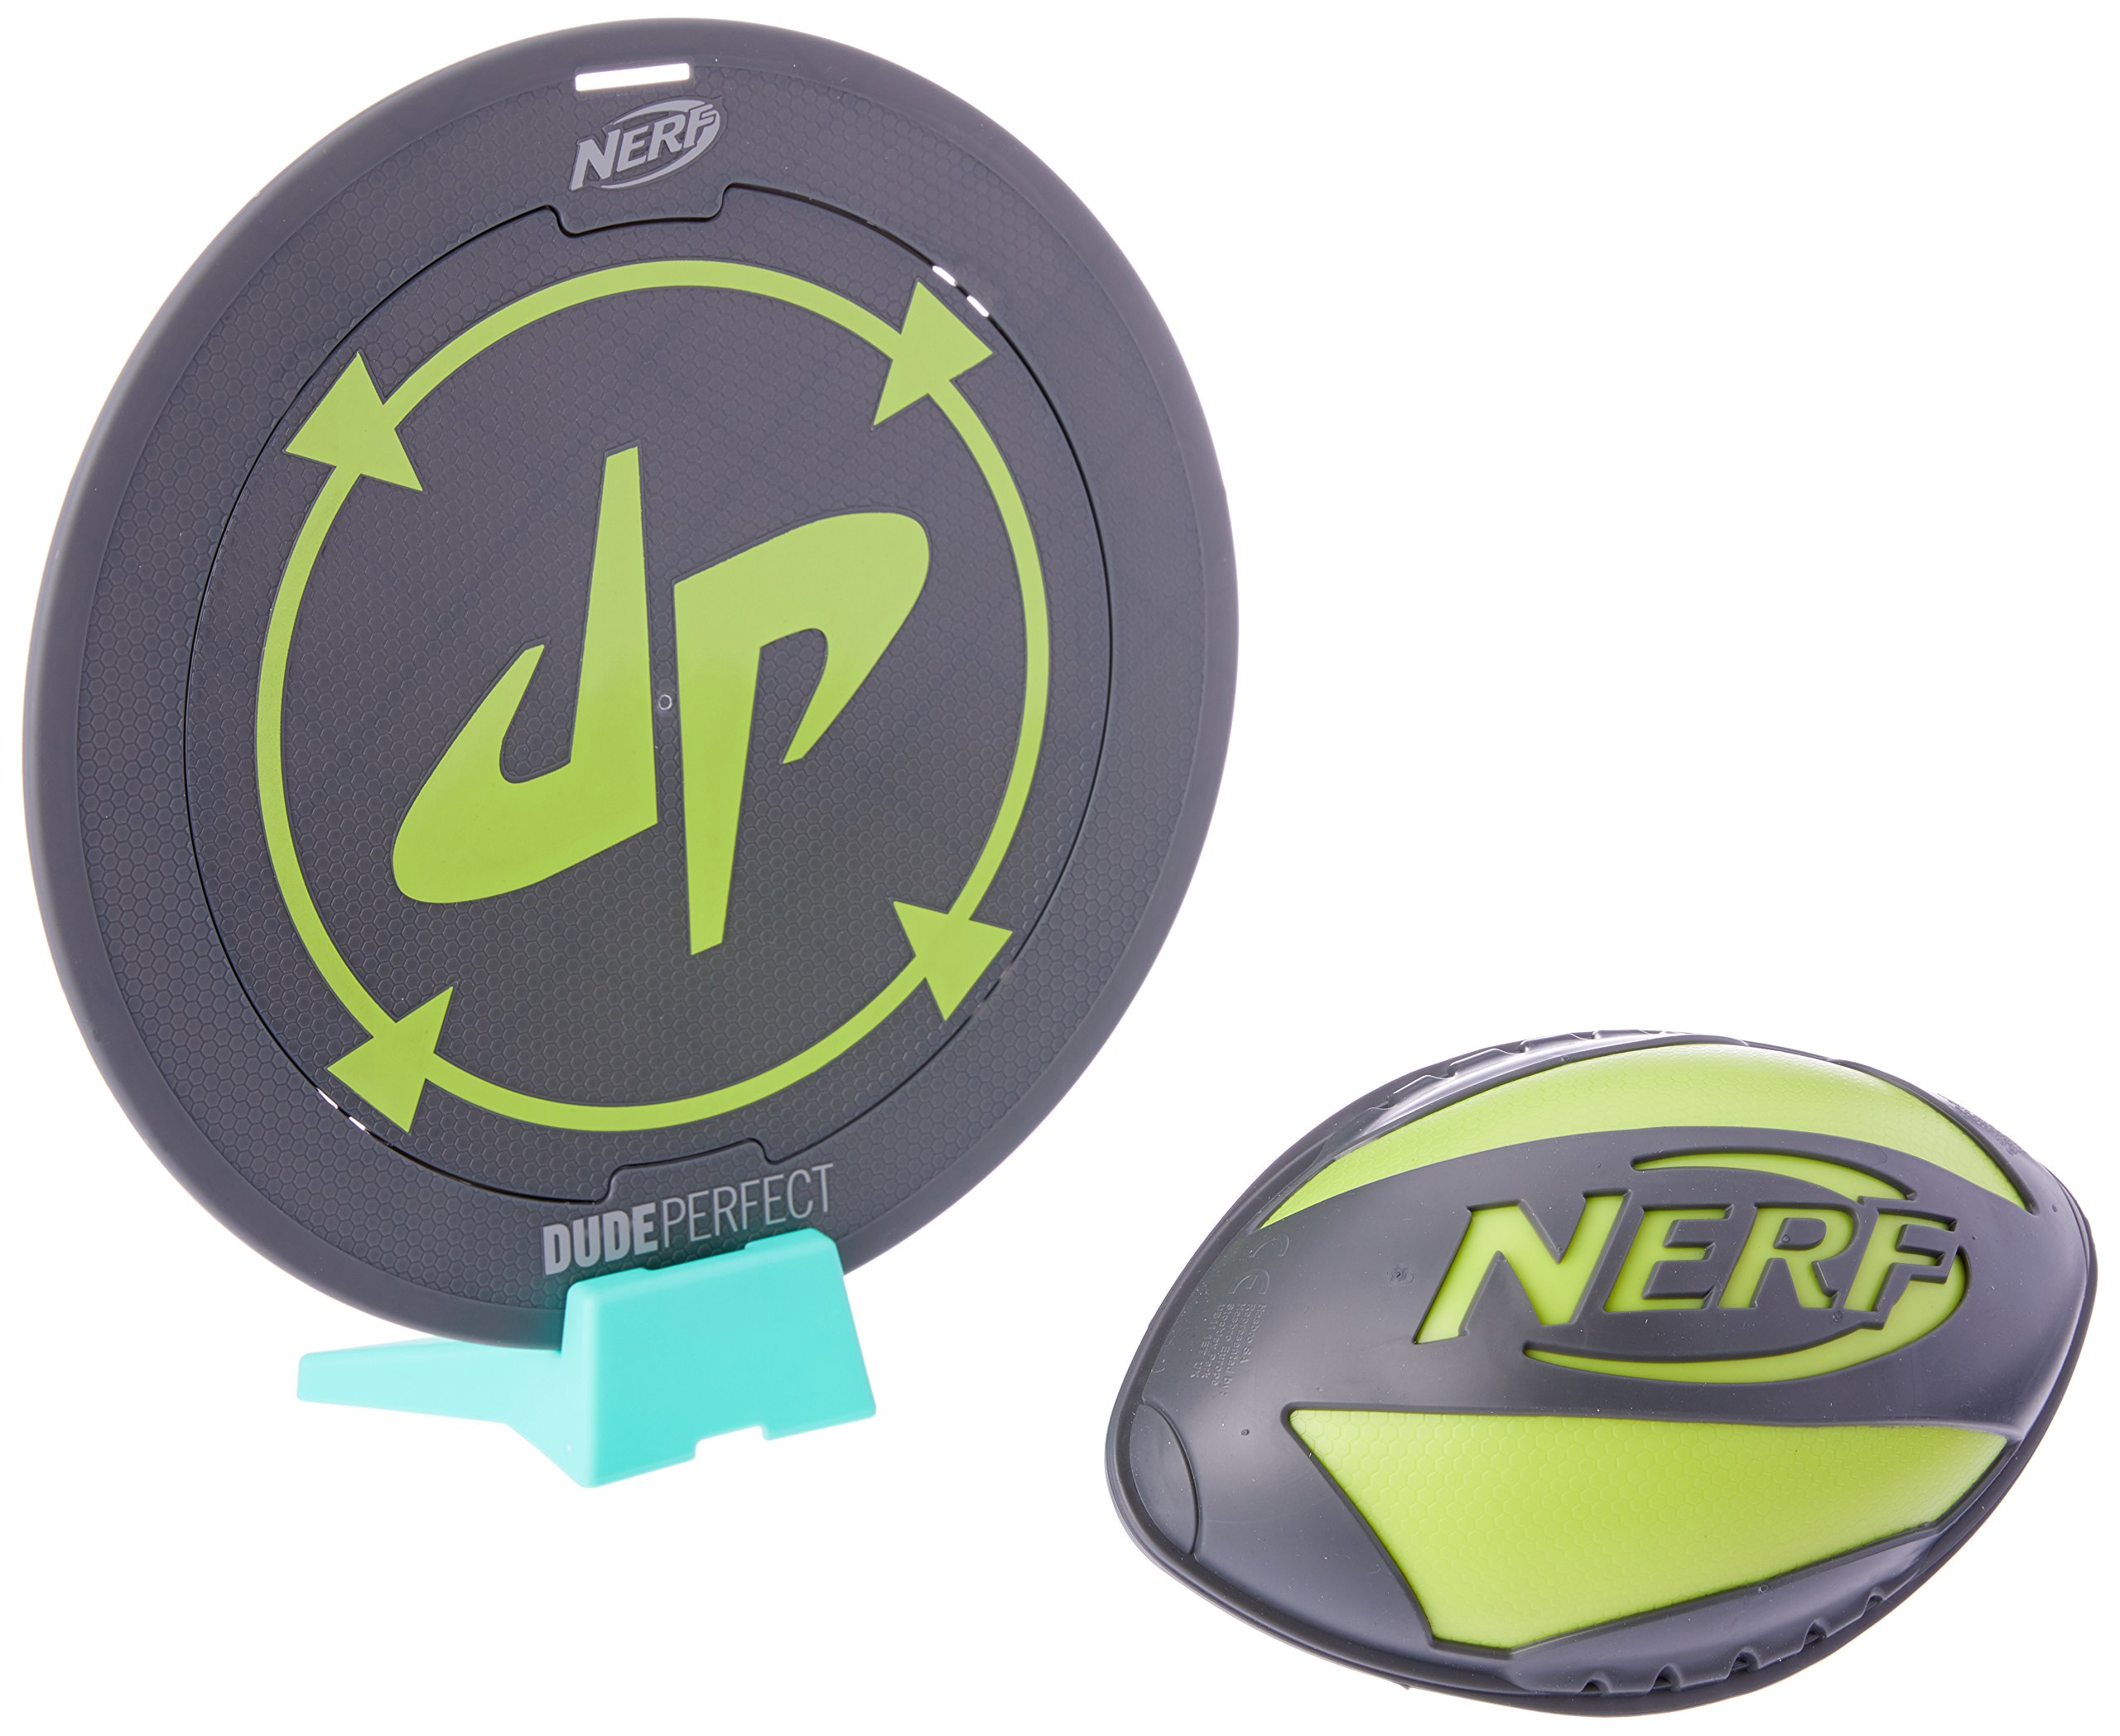 NERF Sports Dude Perfect PerfectSmash Football by NERF